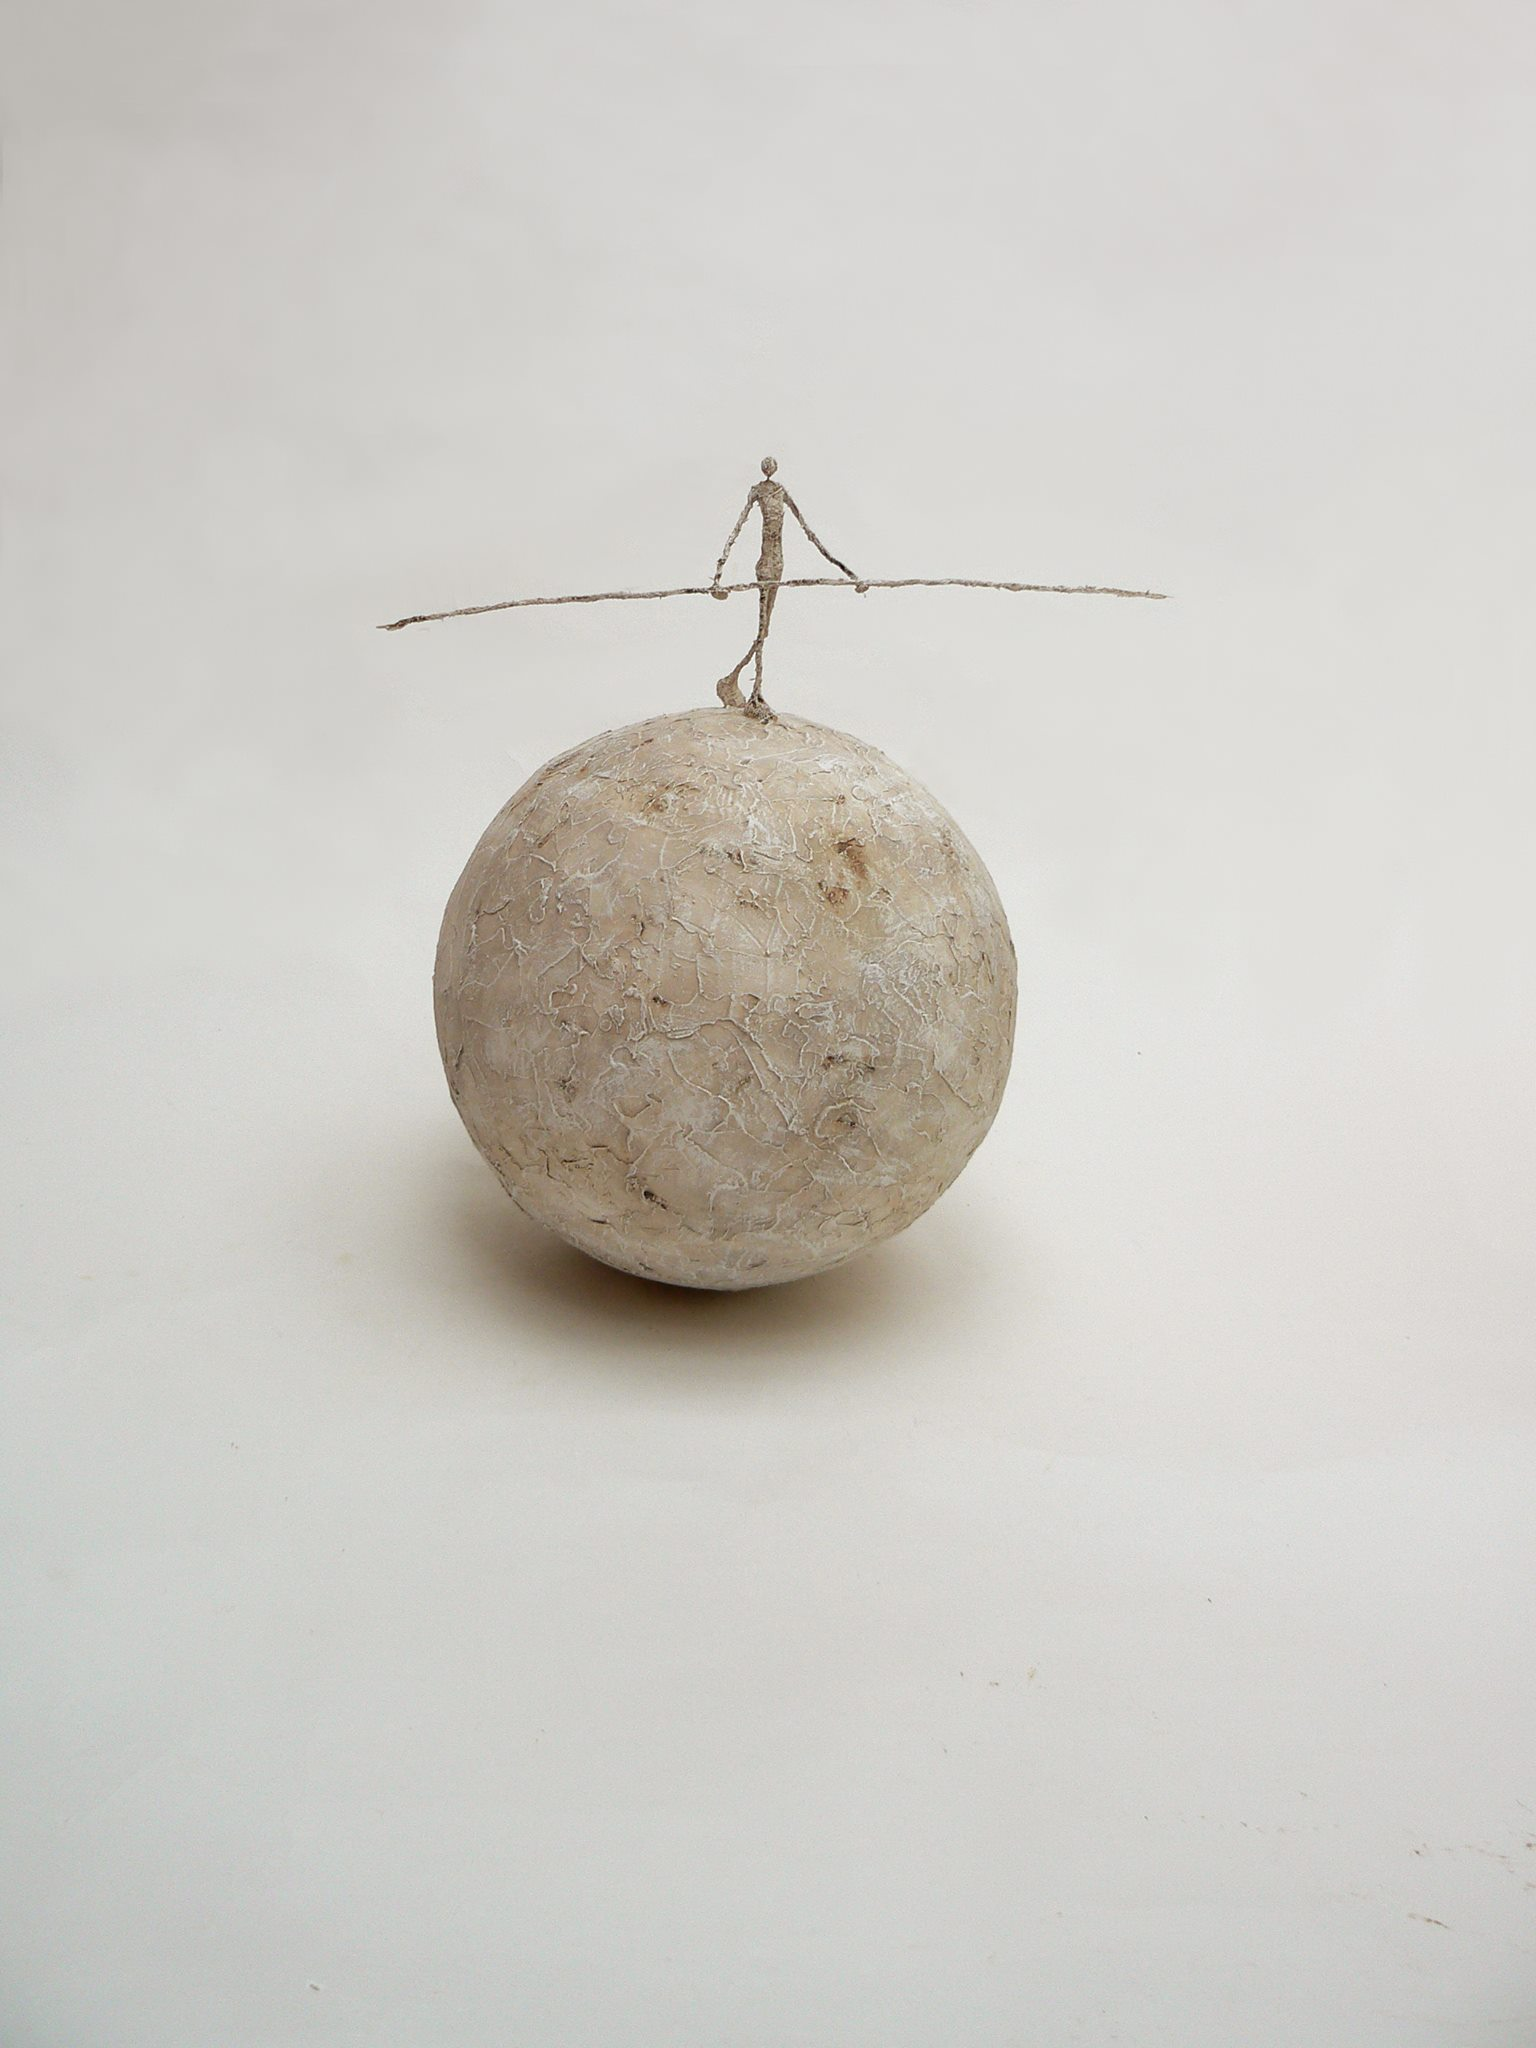 Antoine Josse – Le second pas / 2012 – Sculpture